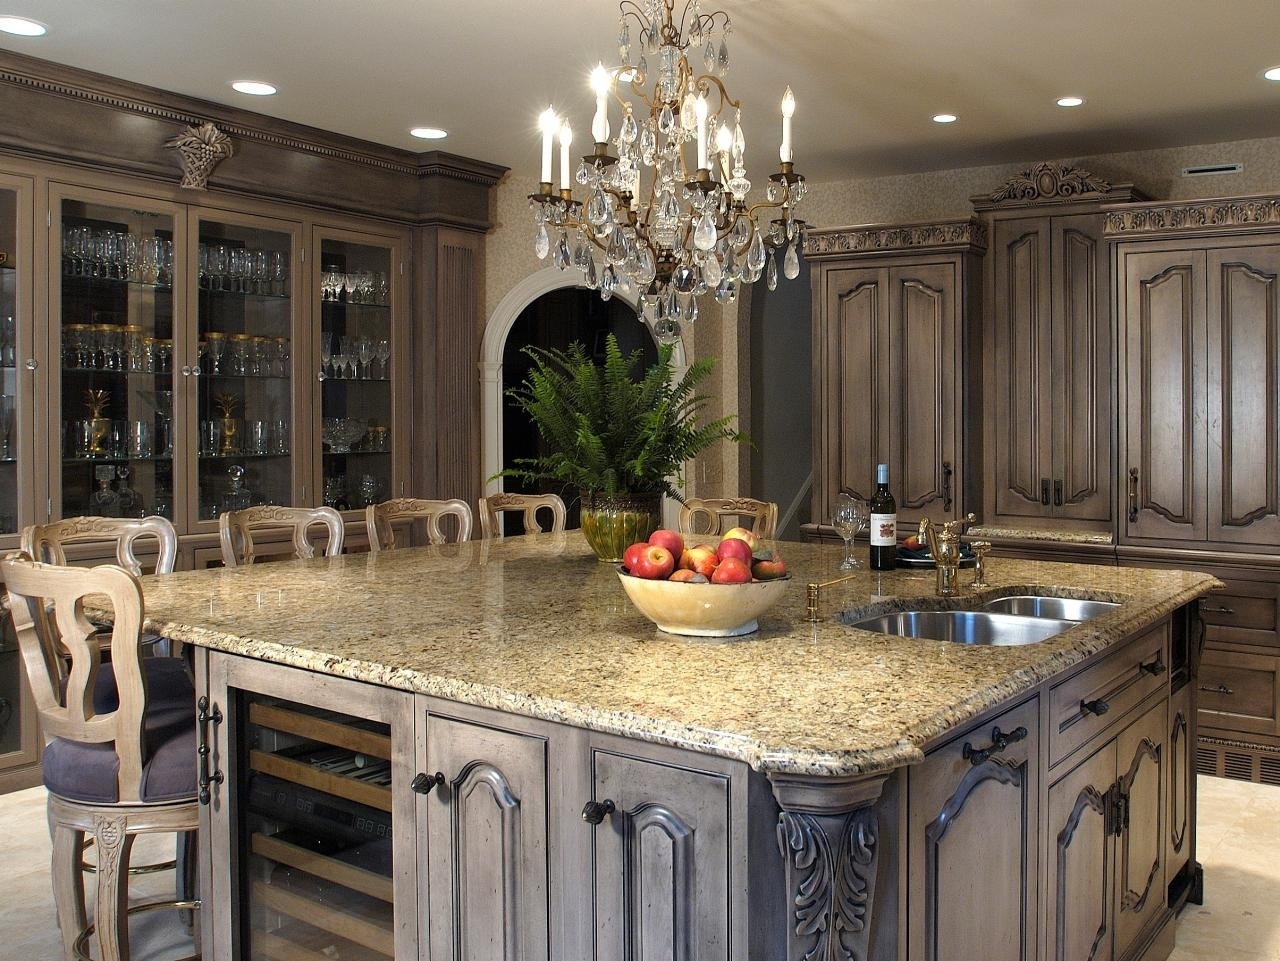 10 Fantastic Ideas For Painting Kitchen Cabinets 2021